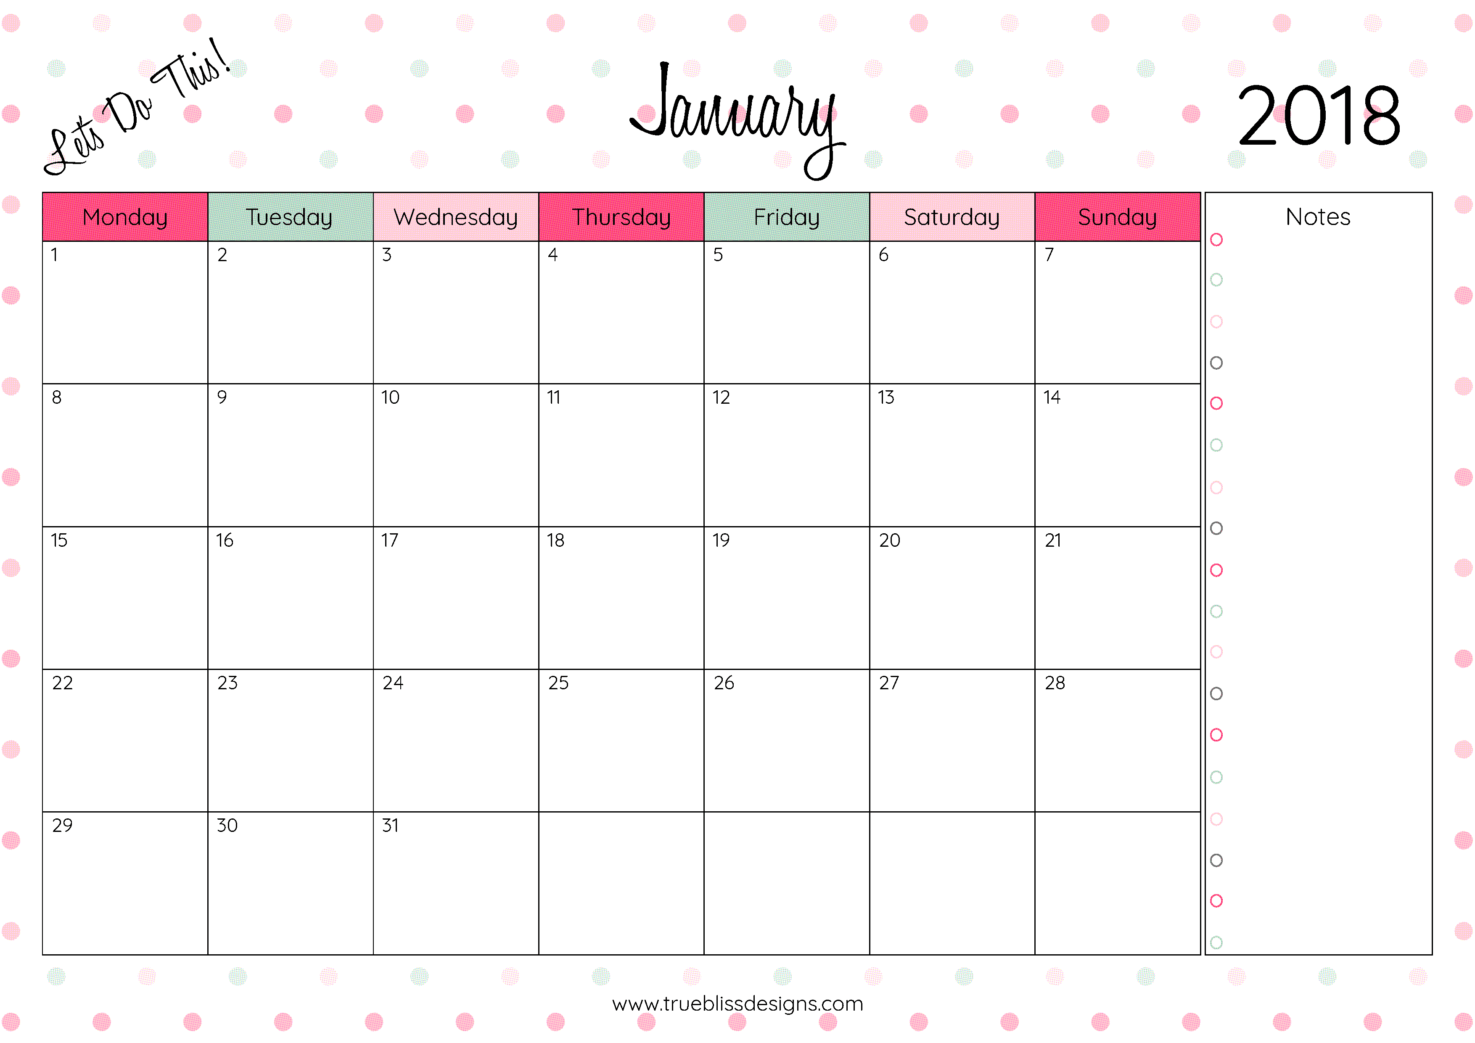 2018 Monthly Printable Calendar – Let's Do This!